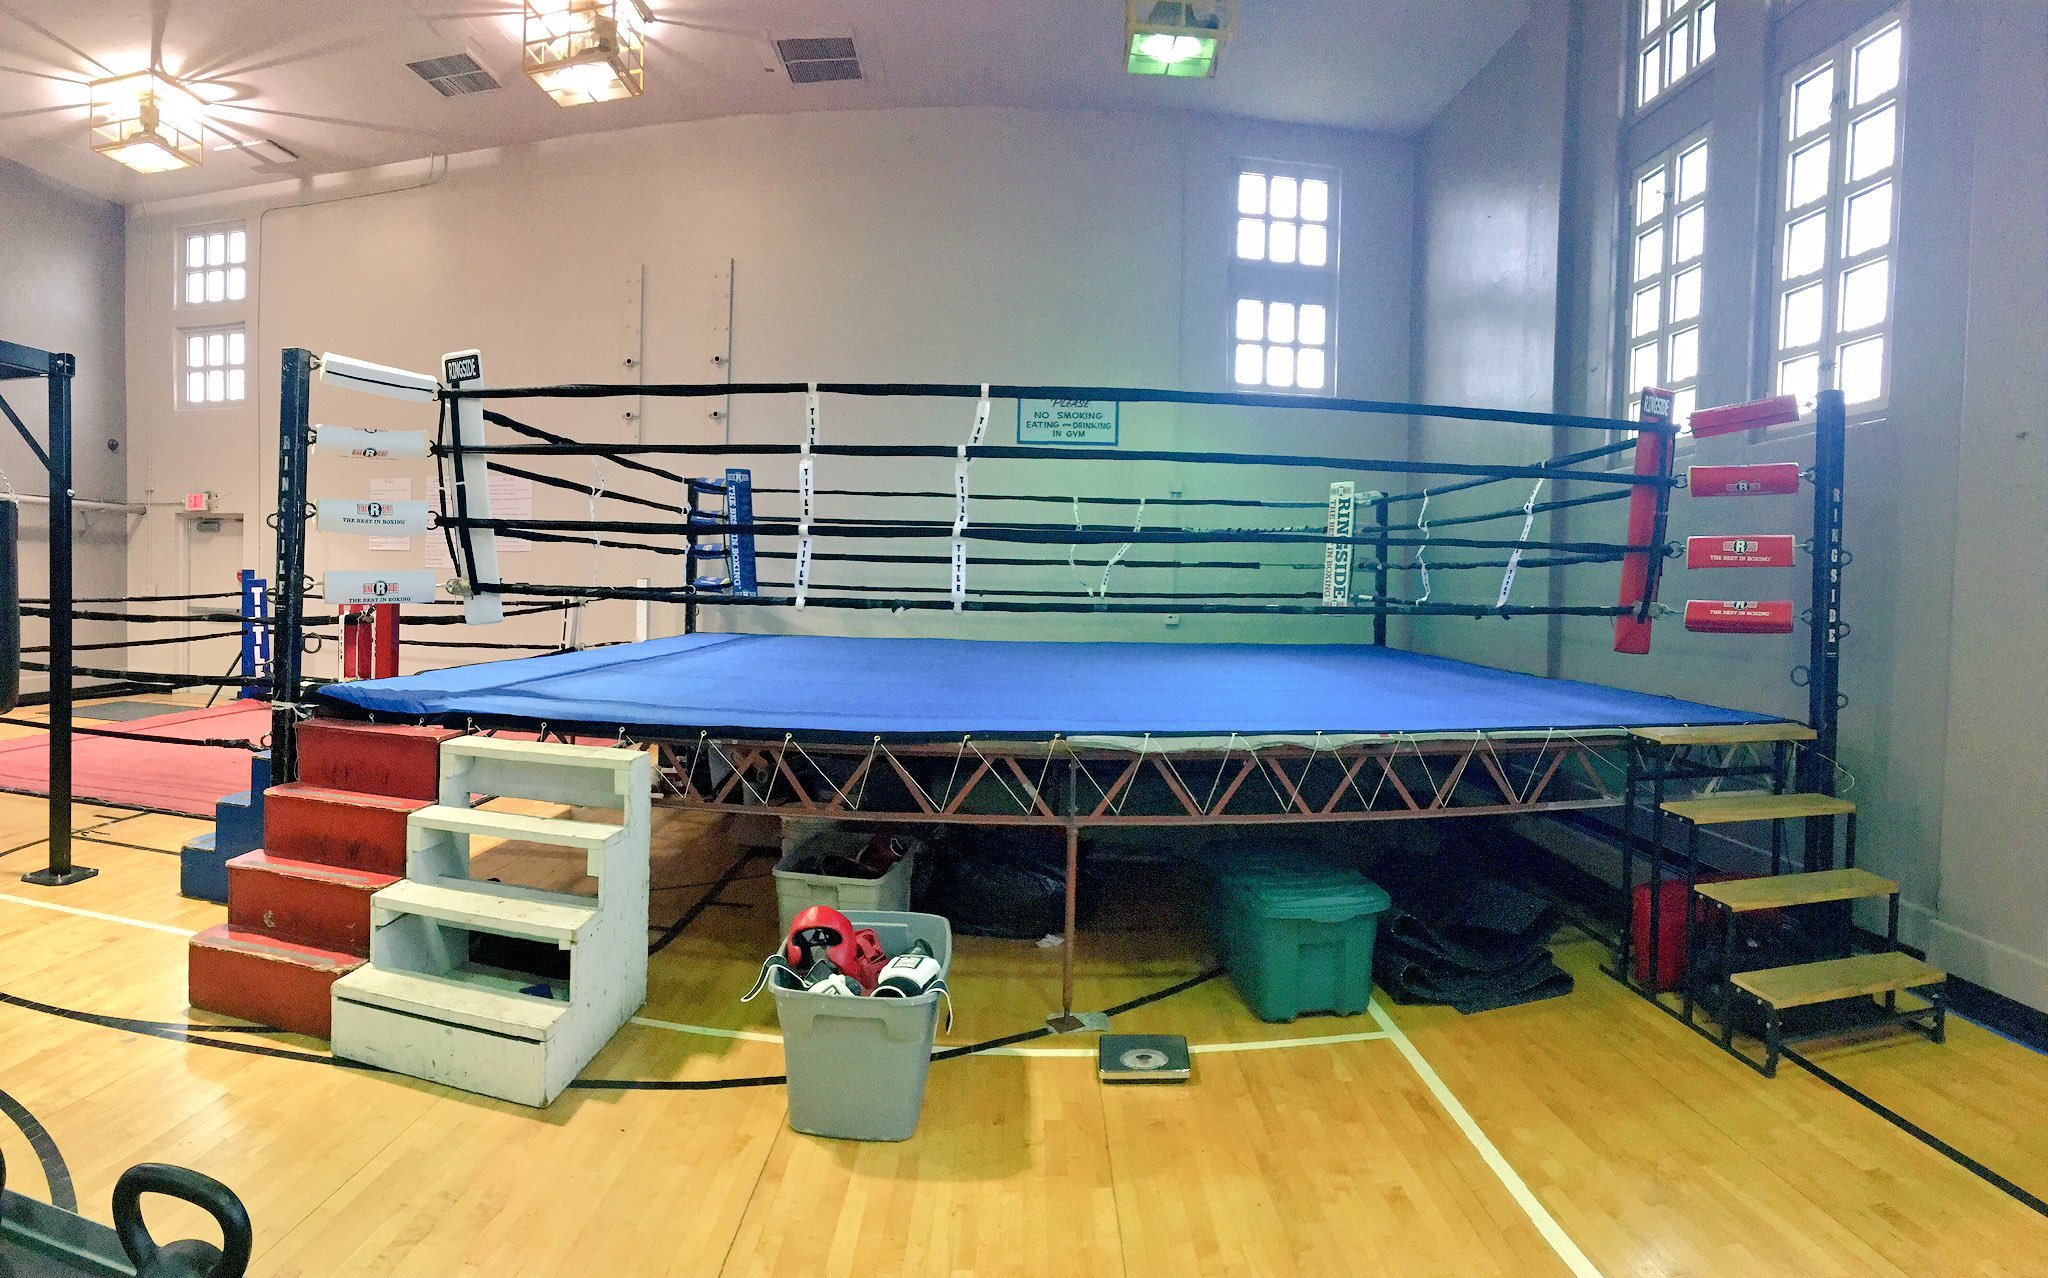 The community center started a brand new boxing club, complete with a boxing ring, practice ring and other needed equipment. (KCTV5)